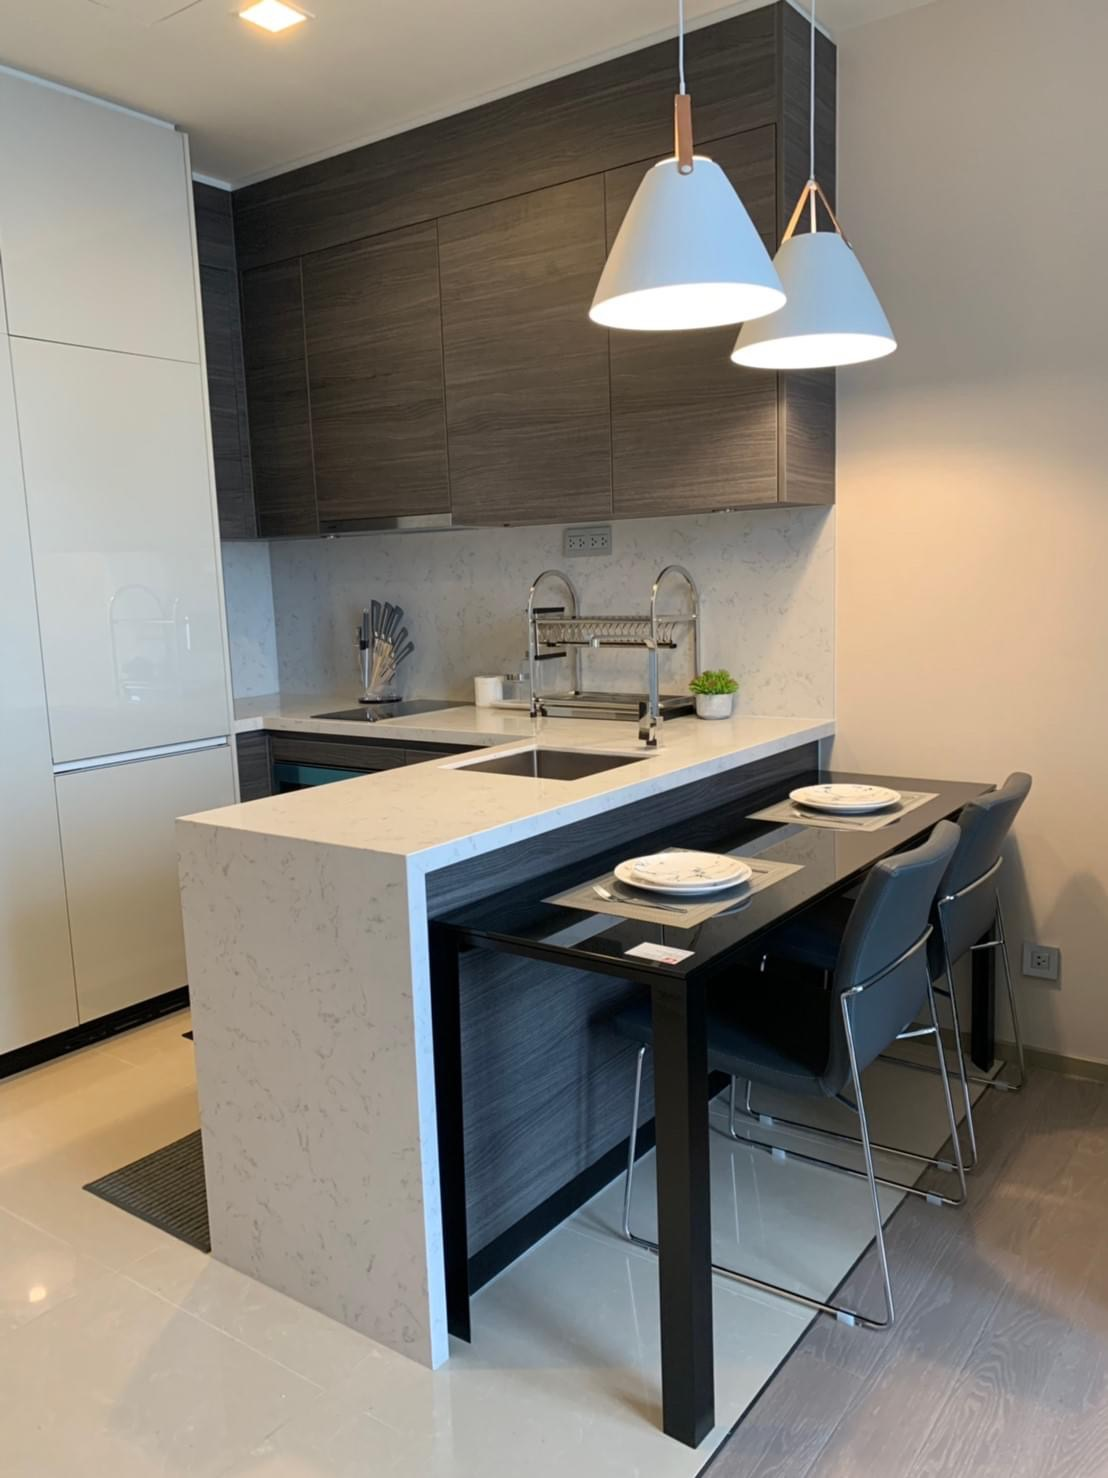 Bangkok Property Condo Apartment Real Estate For Rent in Asok Sukhumvit In The City